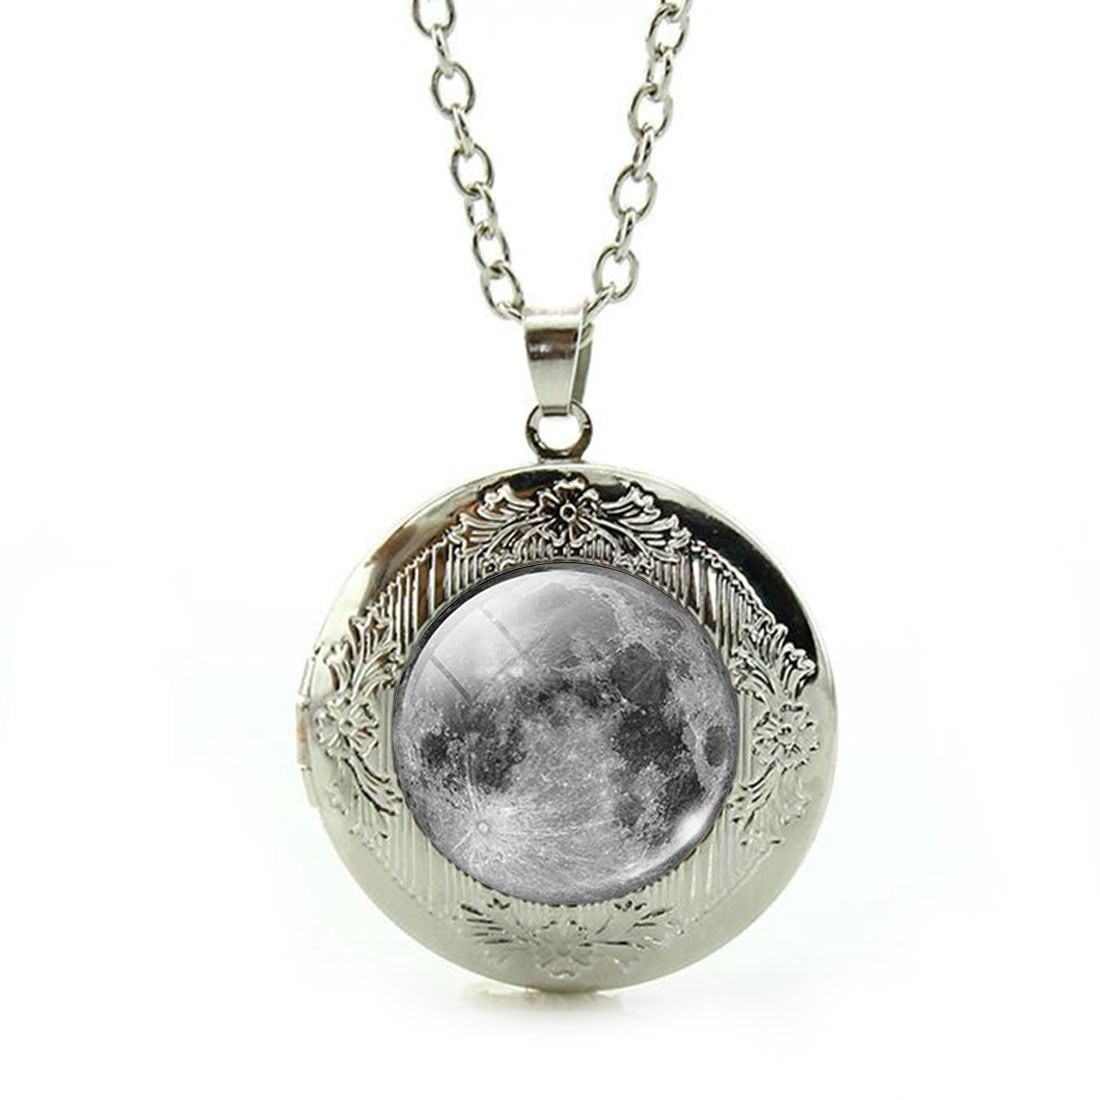 Women's Custom Locket Closure Pendant Necklace Antique Grey Ocean Included Free Silver Chain, Best Gift Set